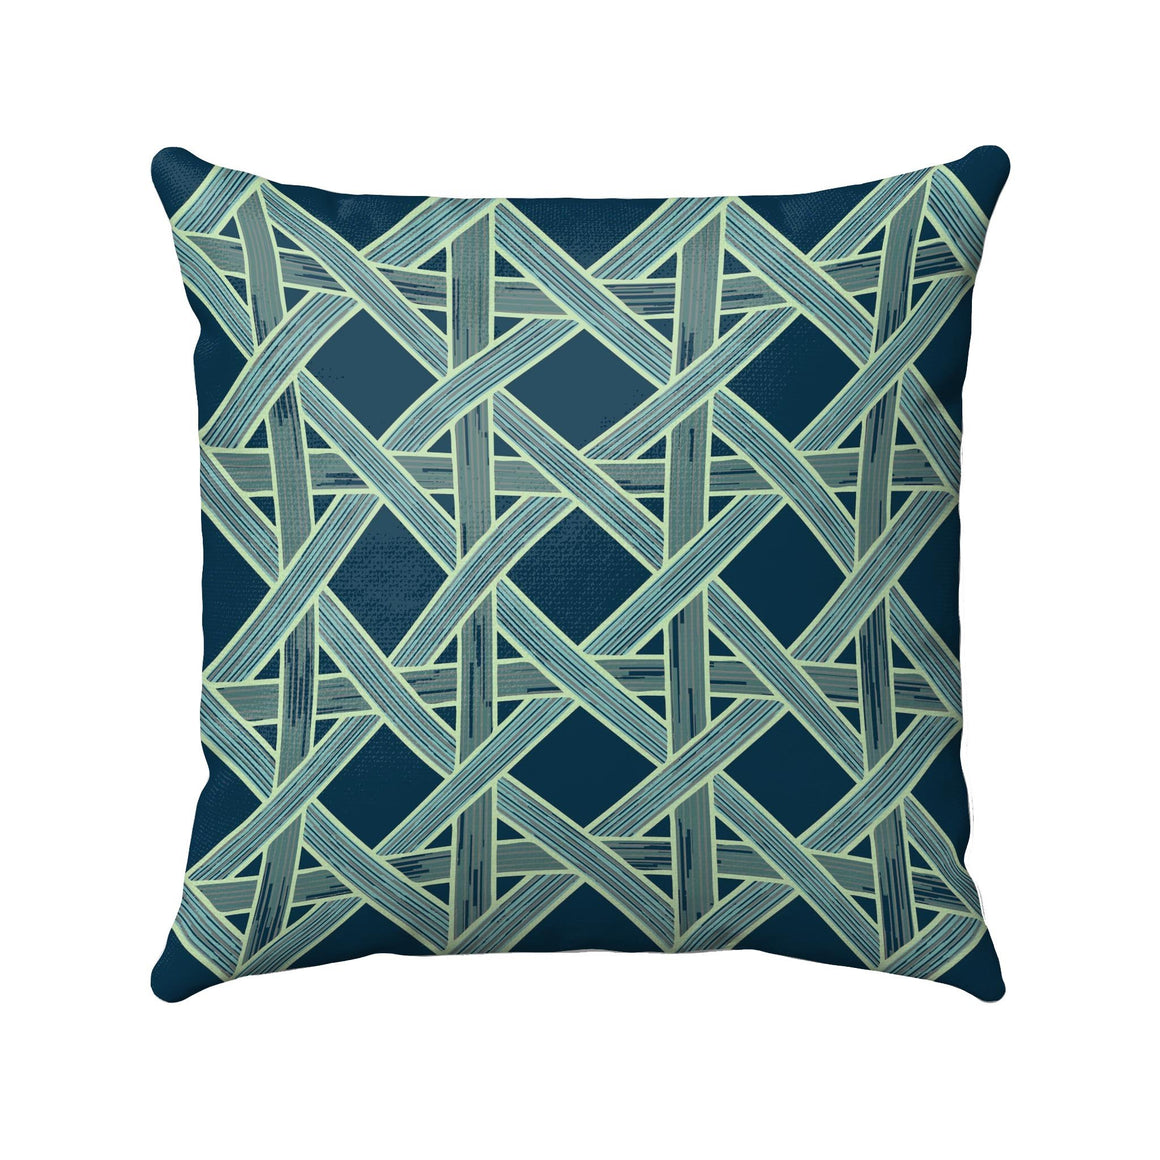 Wicker basket weaves with green and navy details on a dark navy background